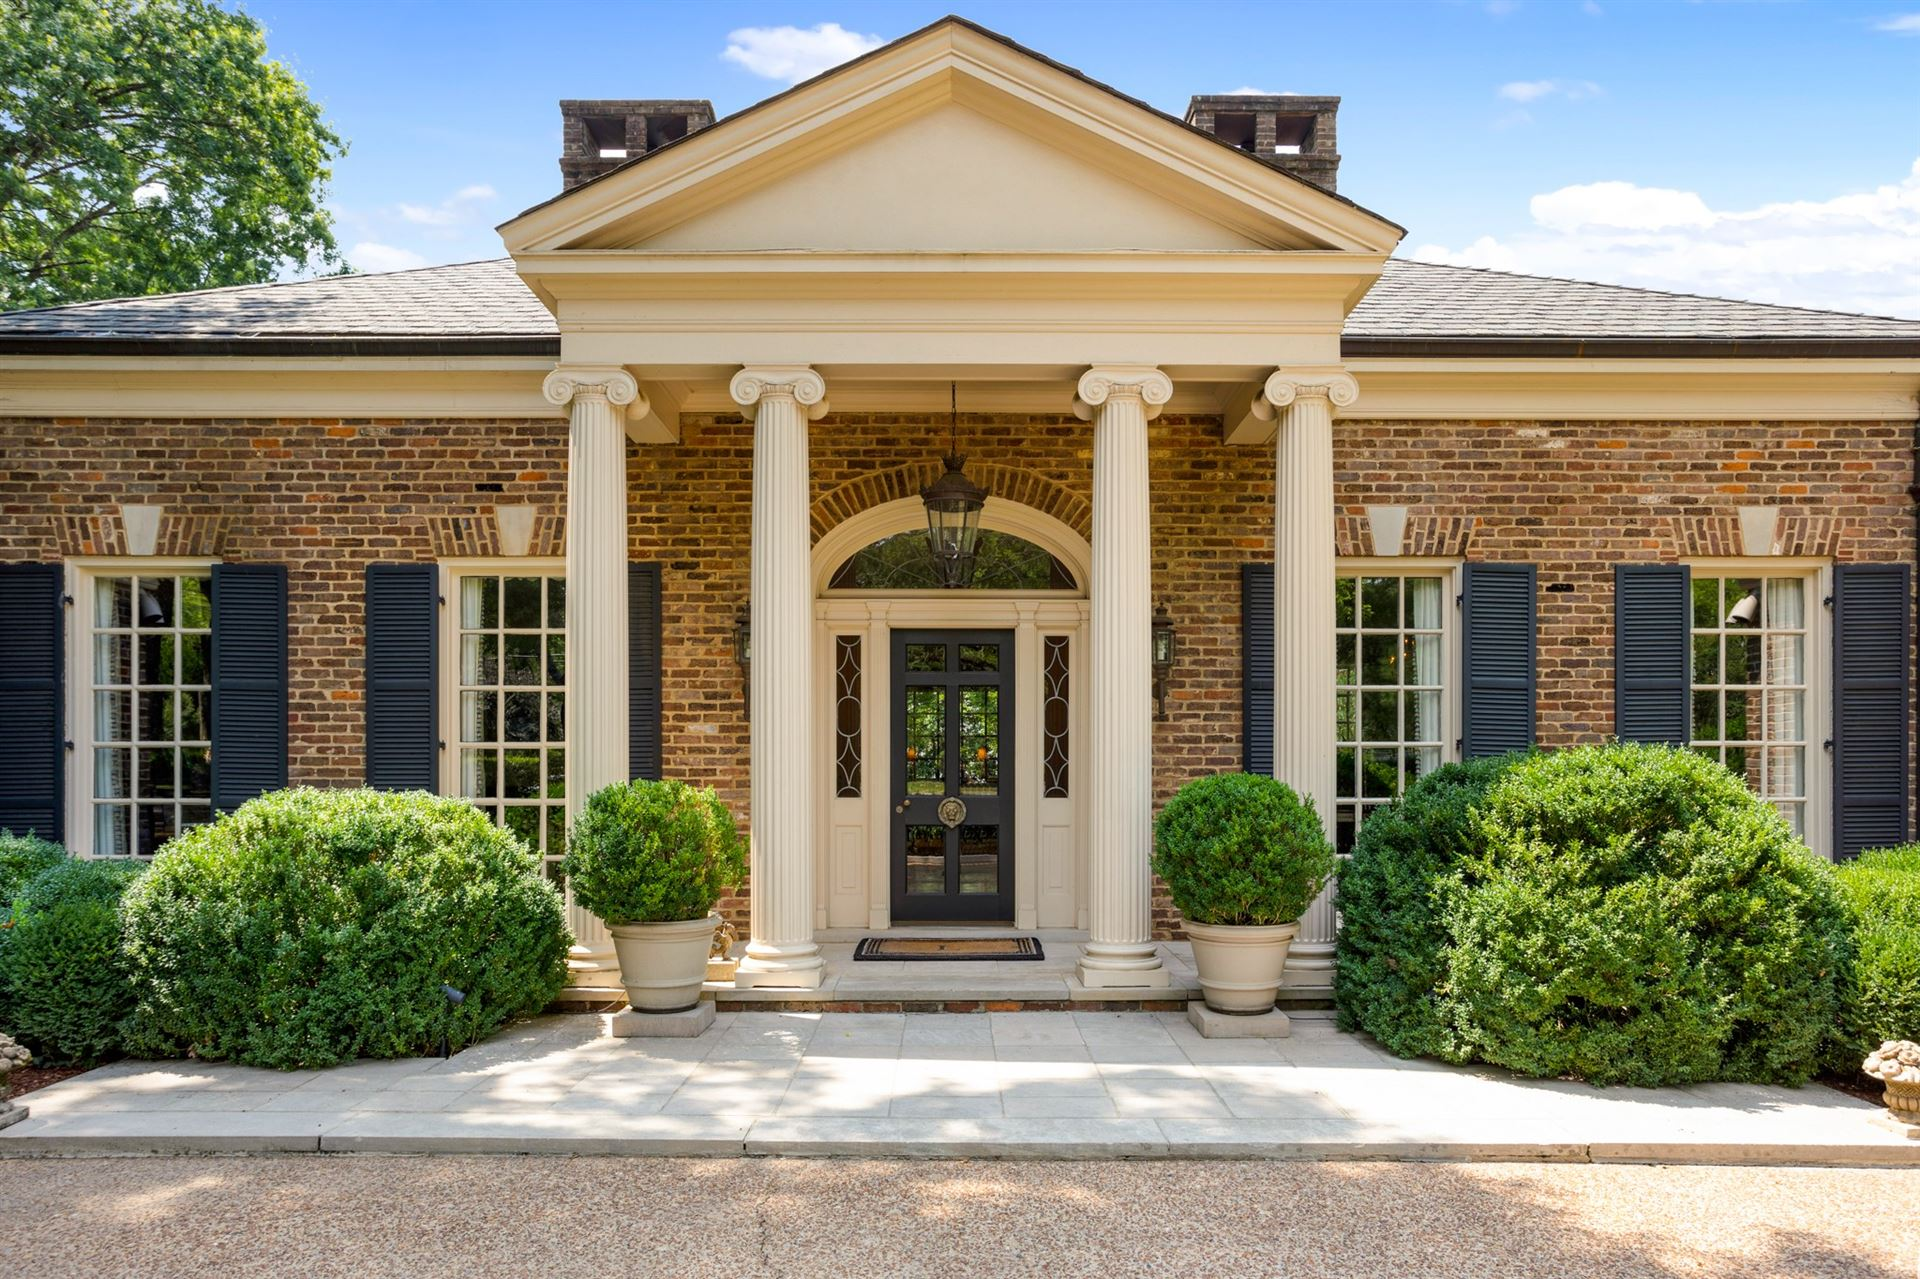 Photo of 1011 Belle Meade Blvd, Nashville, TN 37205 (MLS # 2175299)